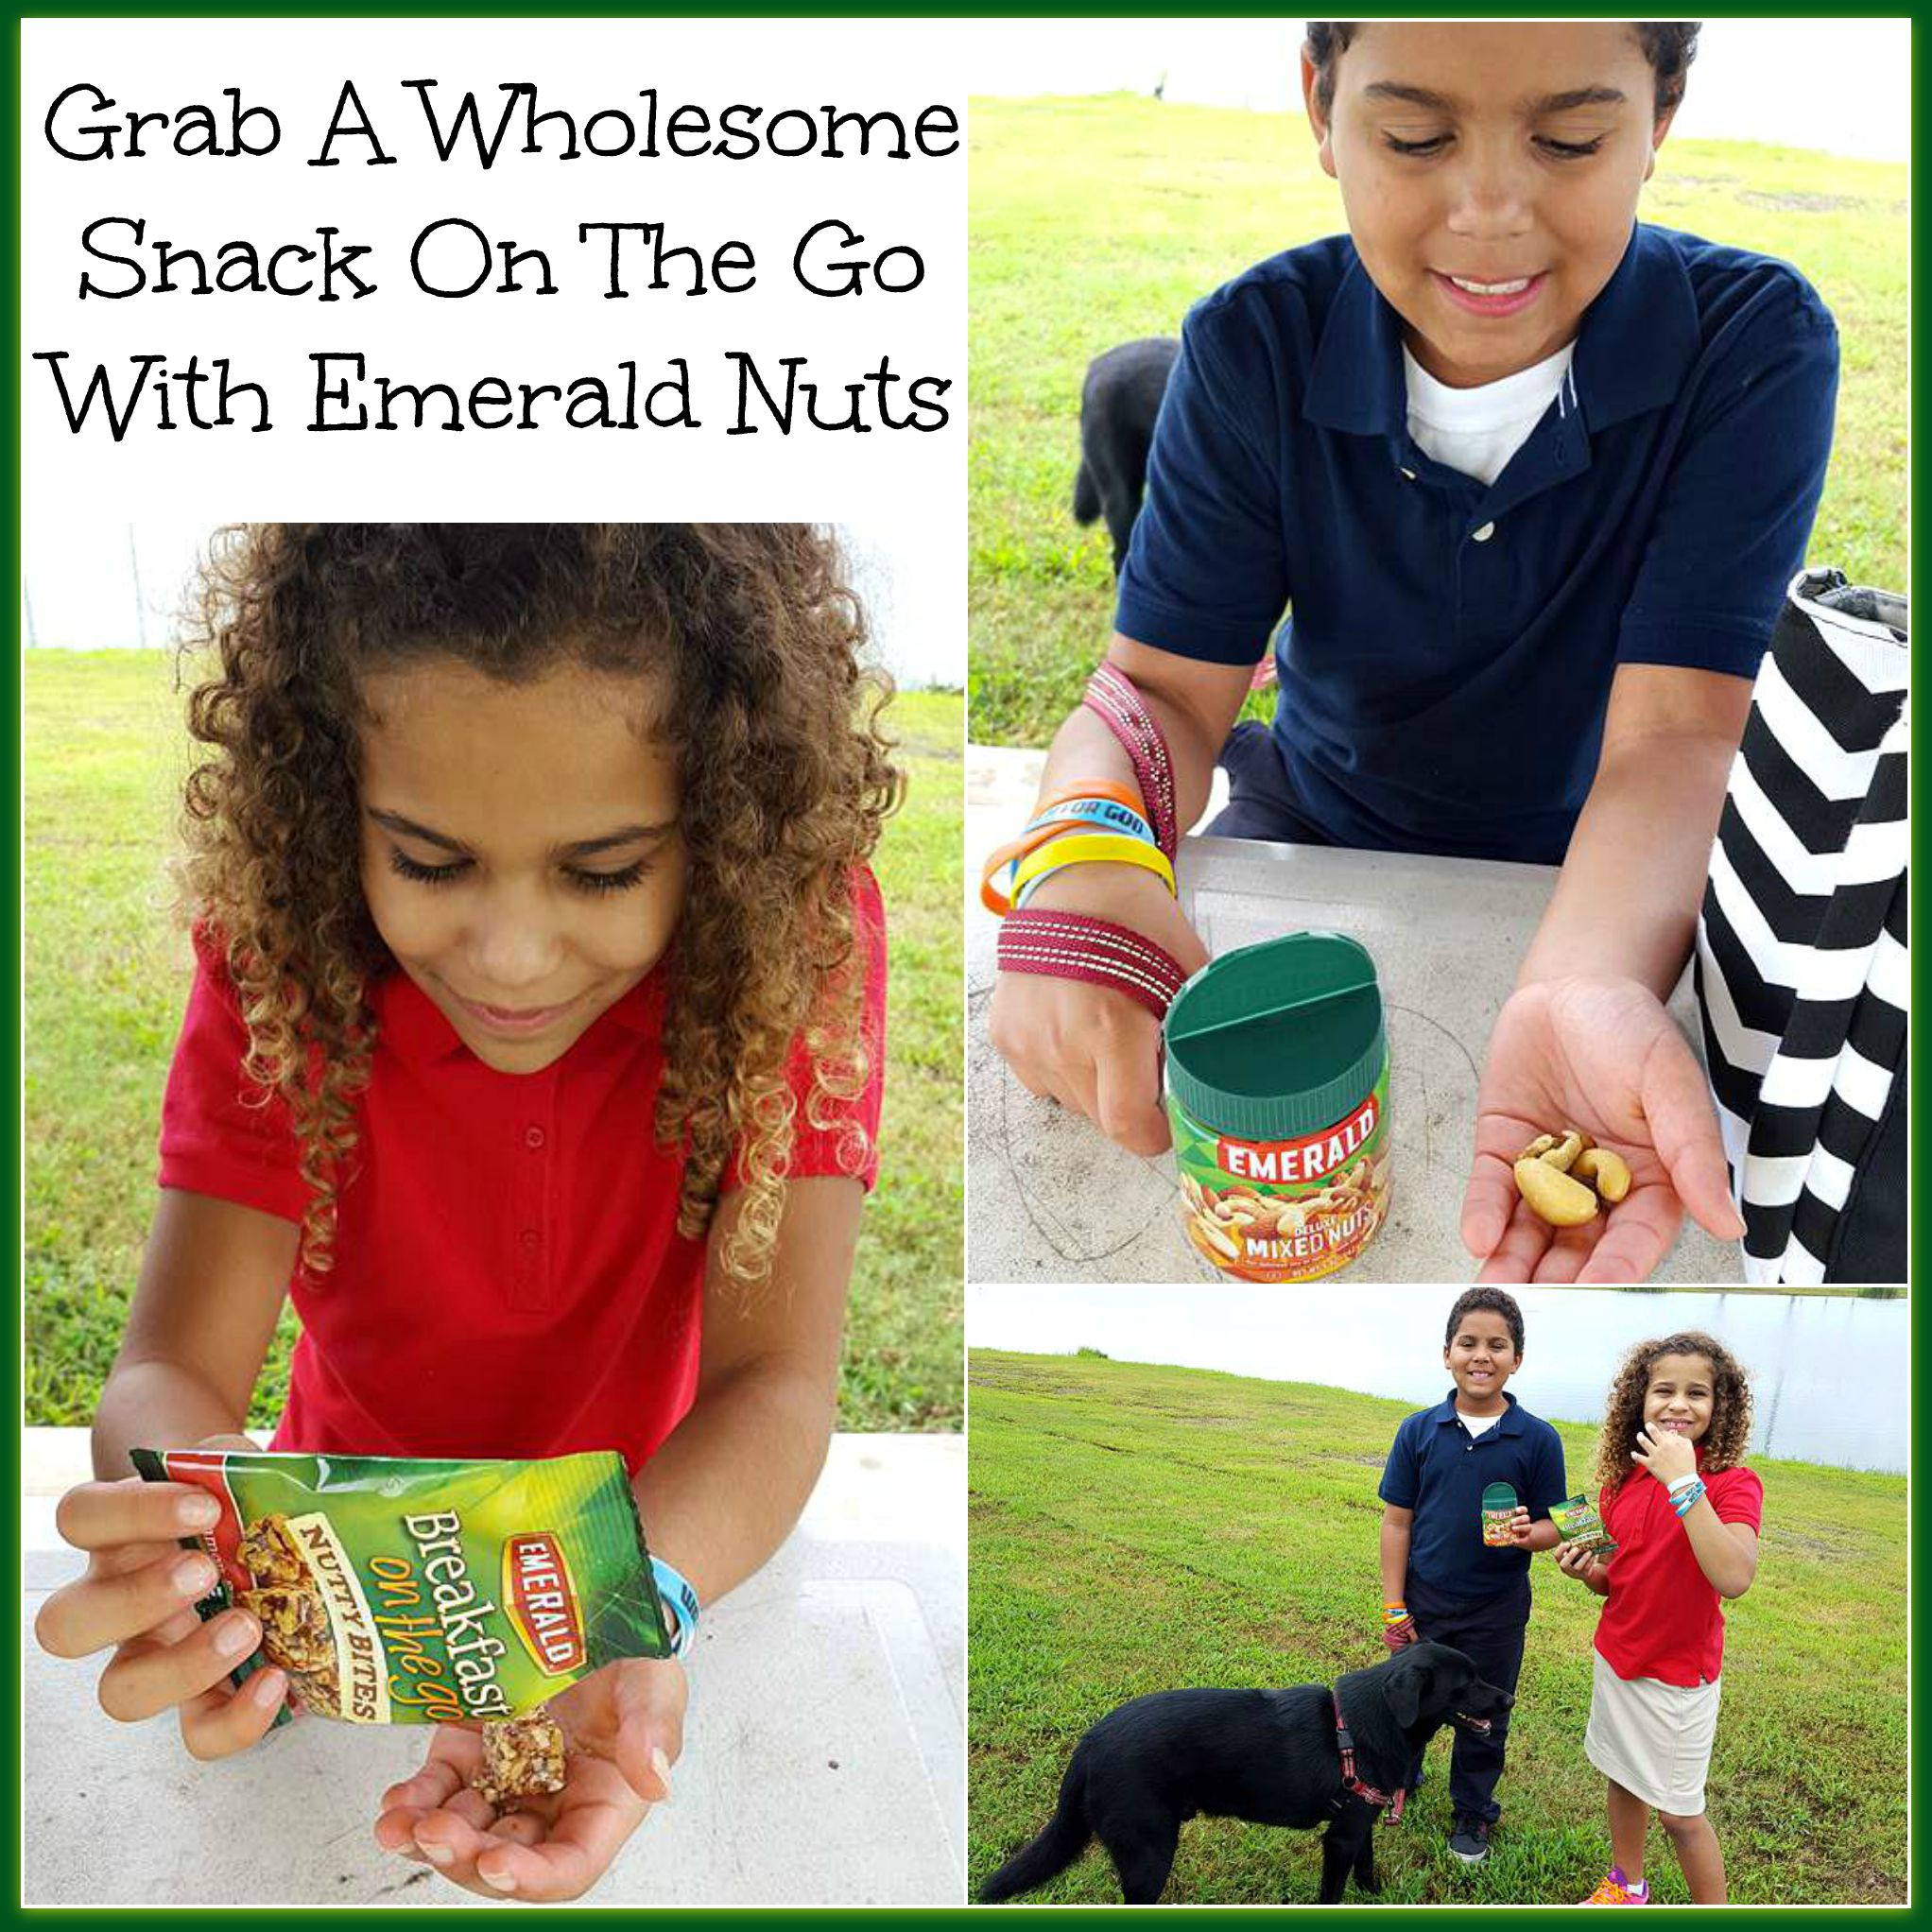 Grab A Wholesome Snack On The Go With Emerald Nuts